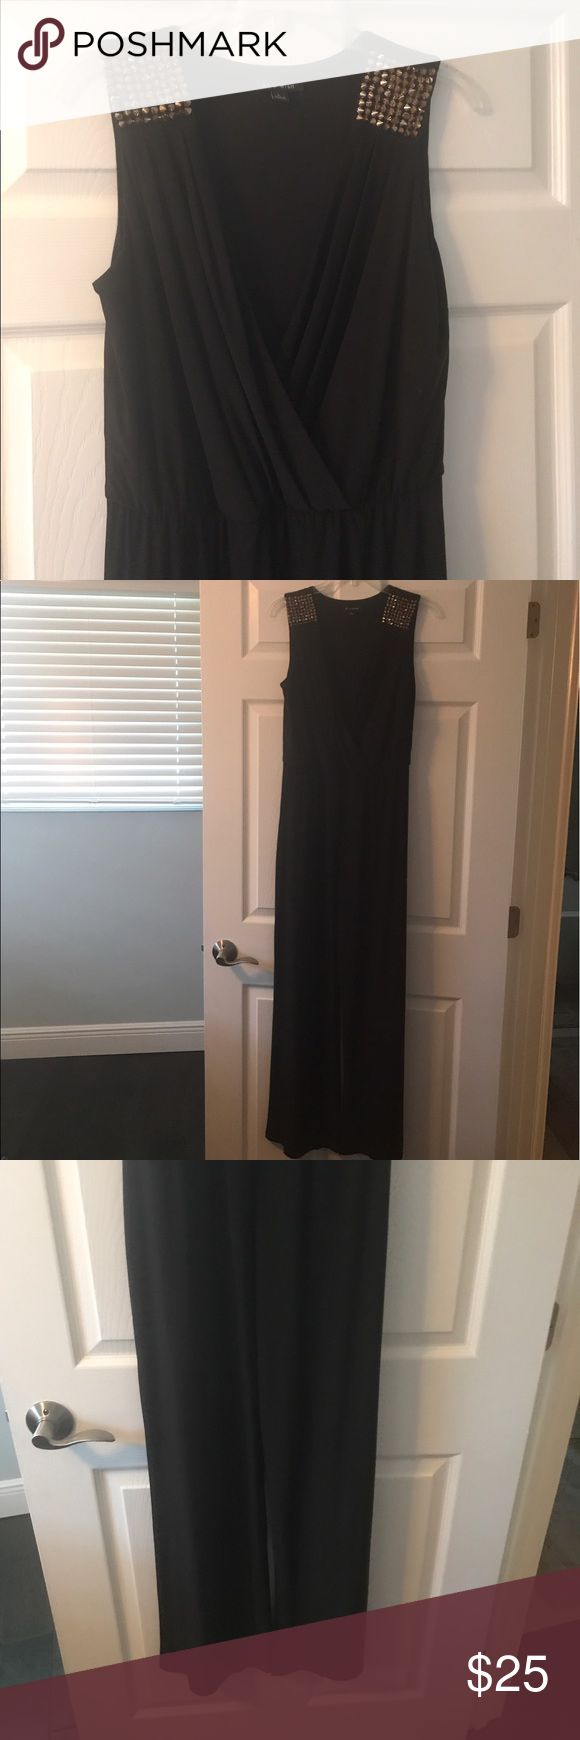 """Sexy pantsuit / jumper with metal spike/studs Surplice wrap plunging v neck jumpsuit with trendy mixed metal spikes on shoulders. Belt not included. 32"""" inseam, bottom opening of wide legs are approx 11 1/2"""" across (like a palazzo pant) approx 13"""" rise from crotch to elastic waist.  96% polyester/4% spandex. Sized as large but feel this fits a medium (8-10) better. Very flowy and drapes so nicely!  Any other measurements/questions needed don't hesitate! As U Wish Pants Jumpsuits & Rompers"""